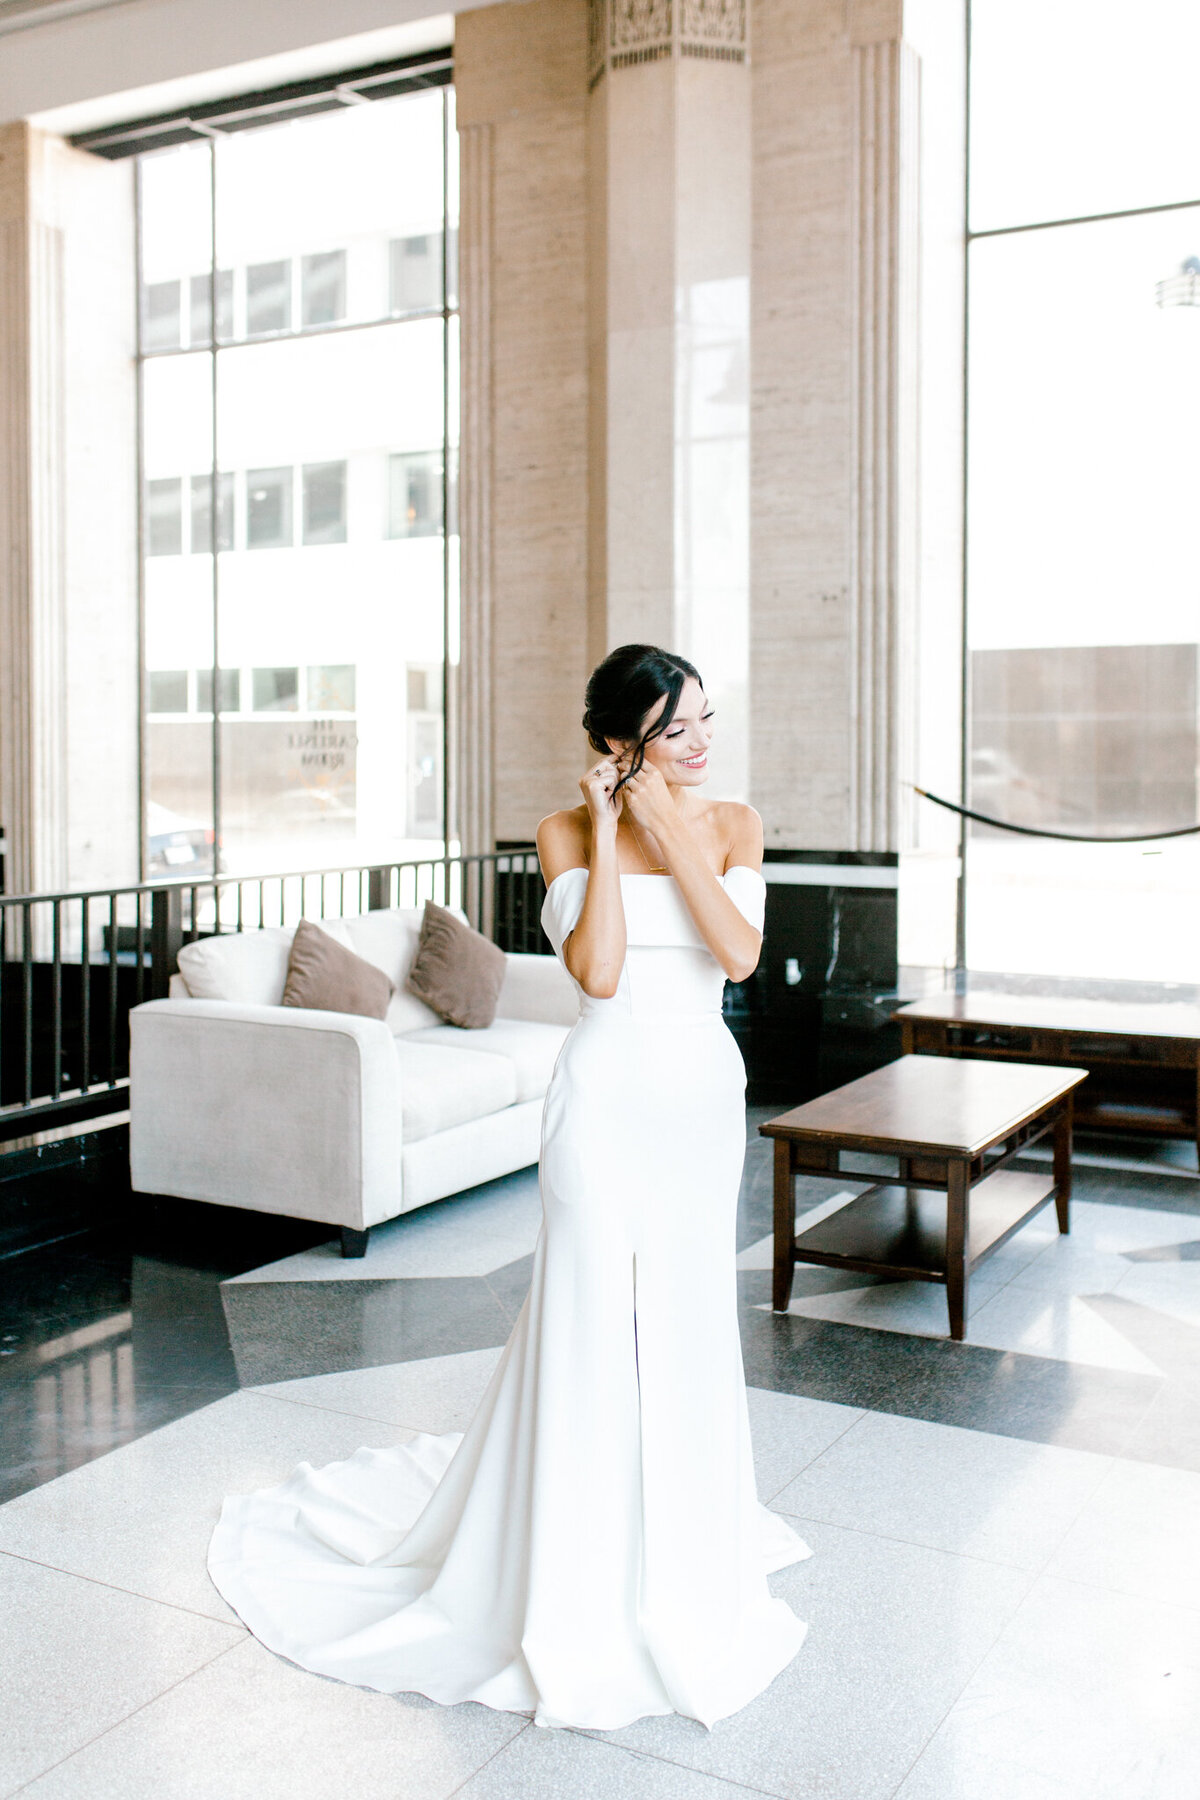 Hope & Zack's Wedding at the Carlisle Room | Dallas Wedding Photographer | Sami Kathryn Photography-18